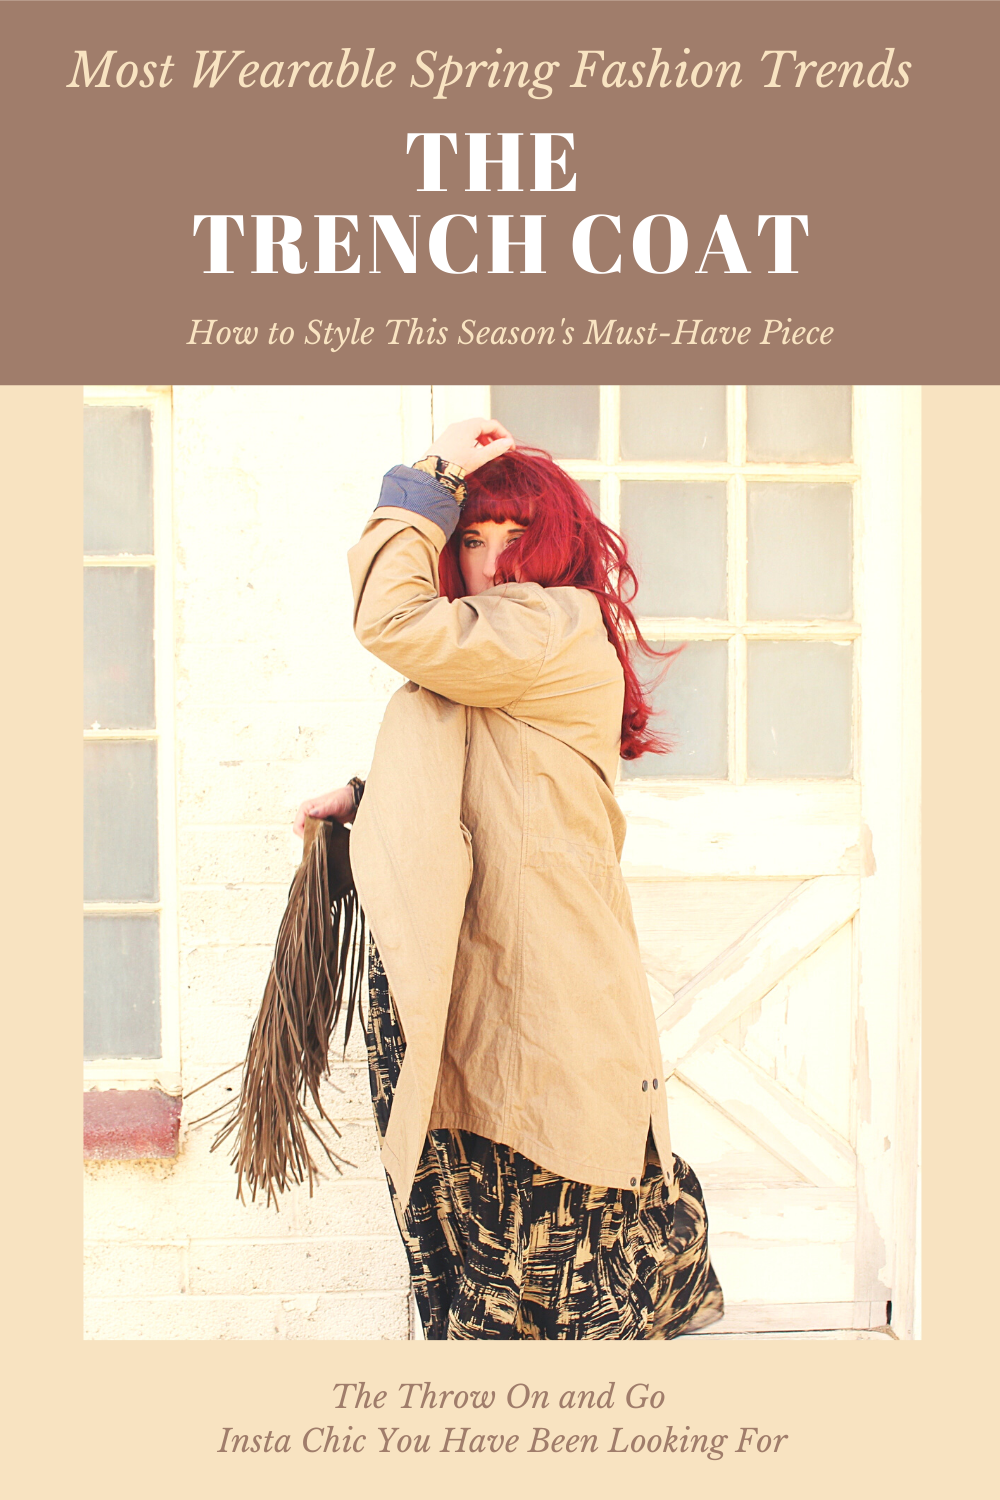 Spring trend Trench Coats